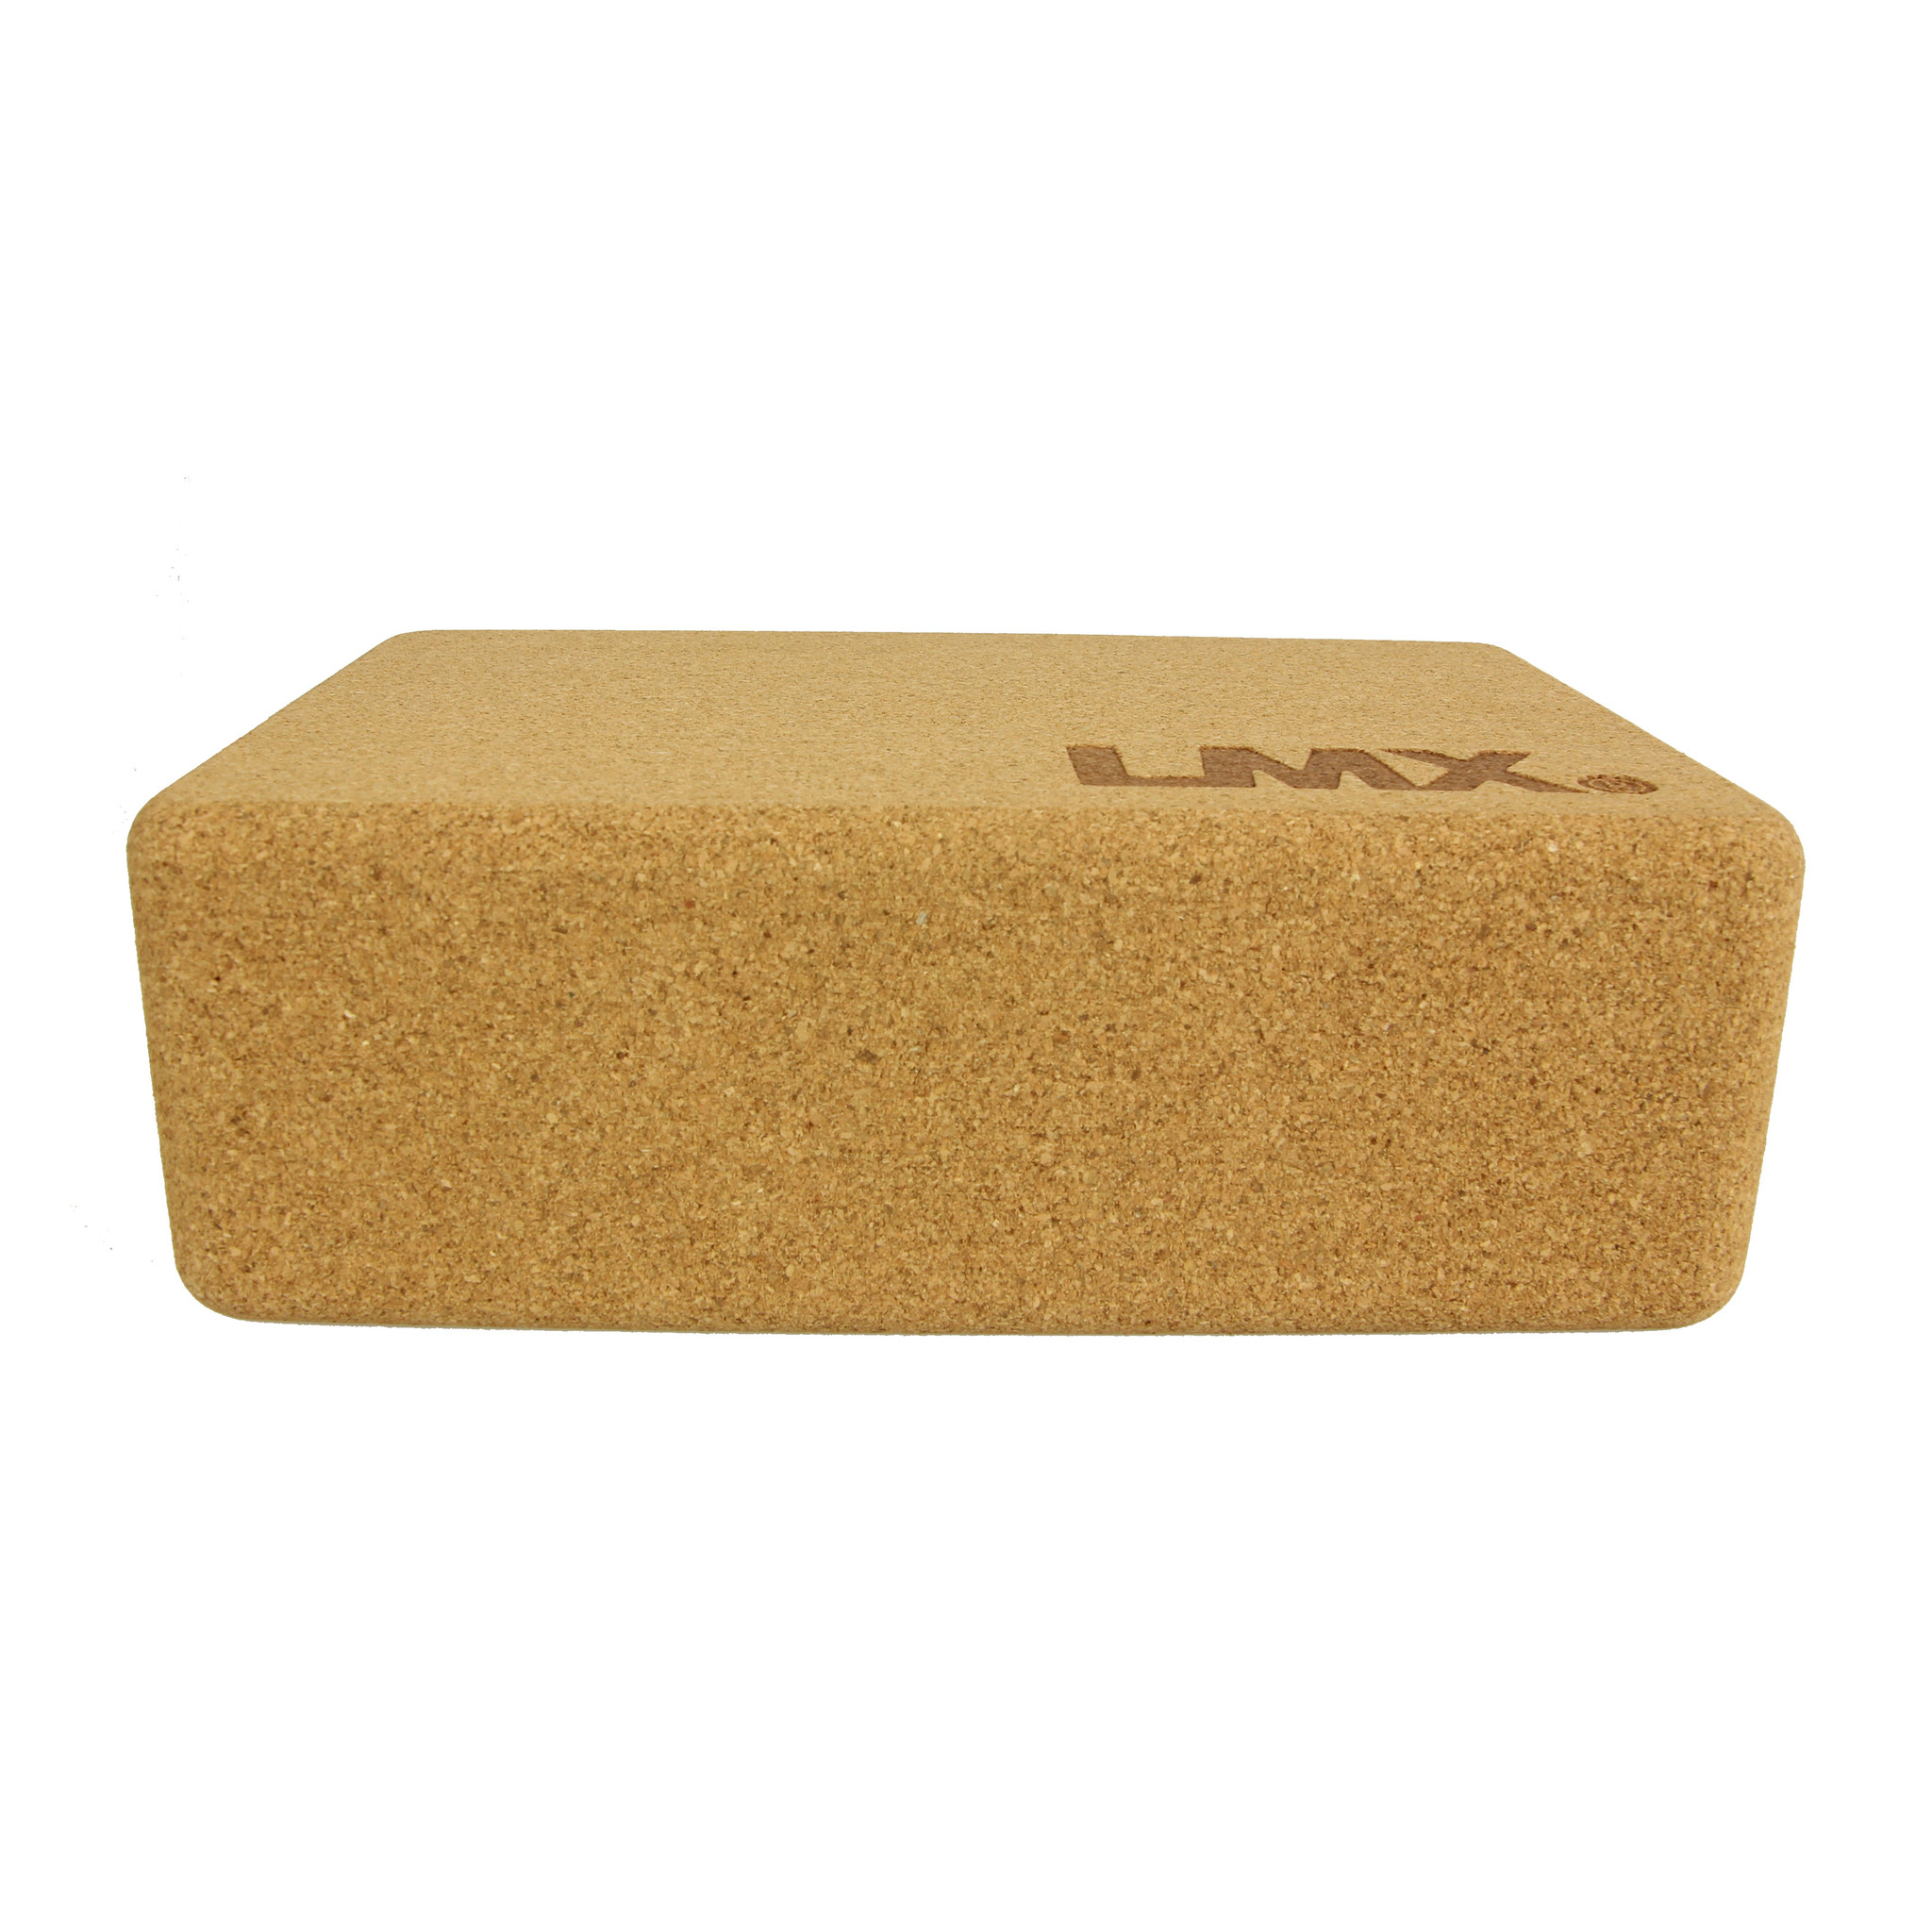 LMX.® LMX1228 LMX. Cork yoga block